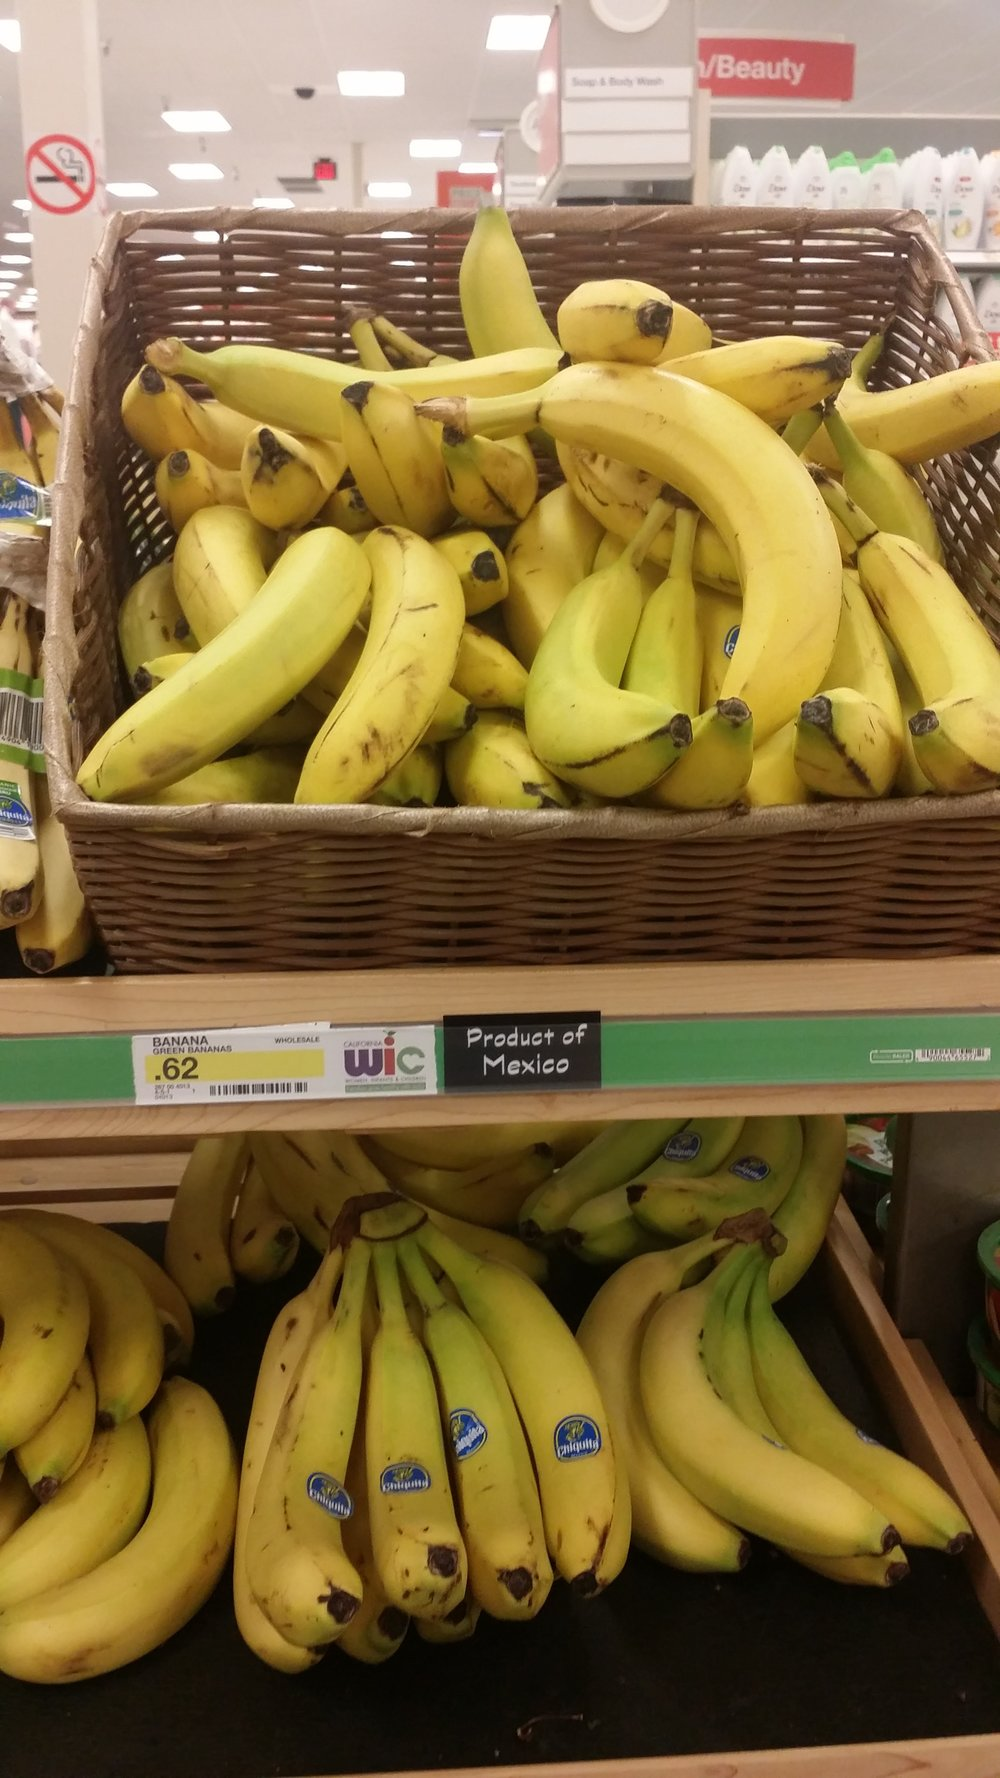 And, they had a basket of lonley bananas.